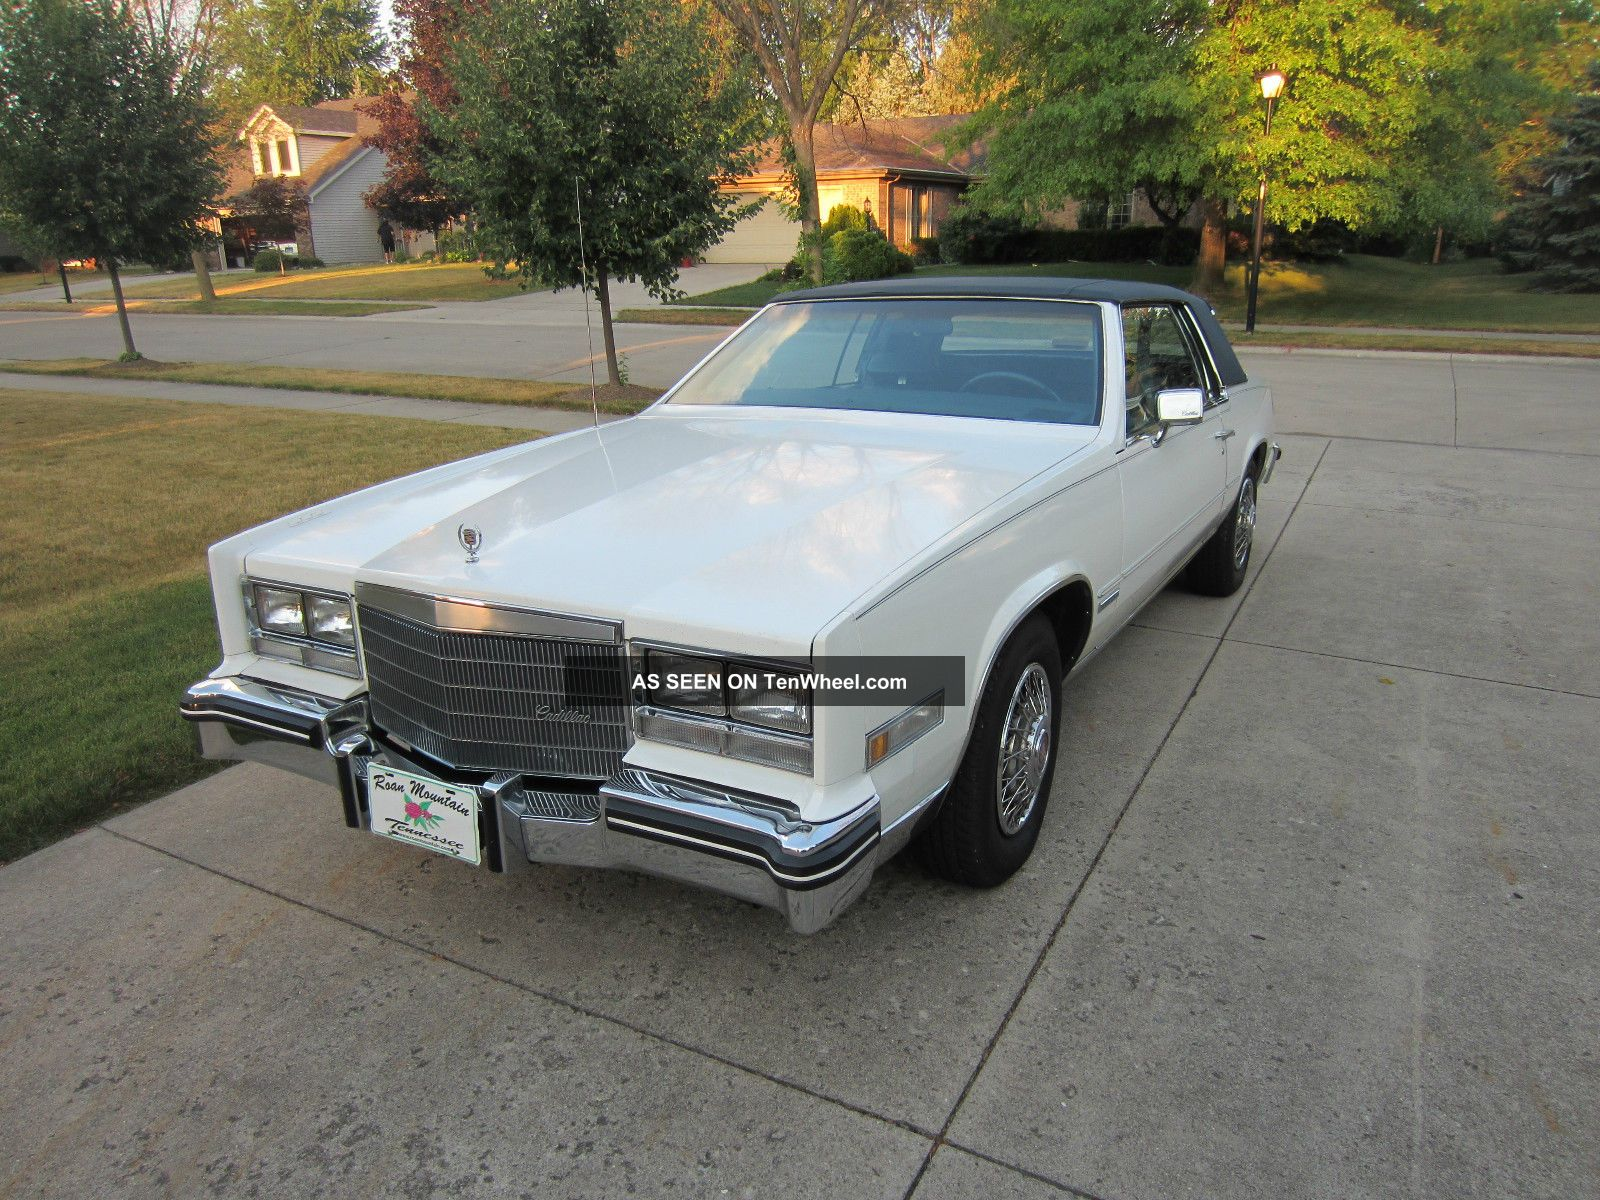 1983 Cadillac Eldorado Touring Coupe Eldorado photo